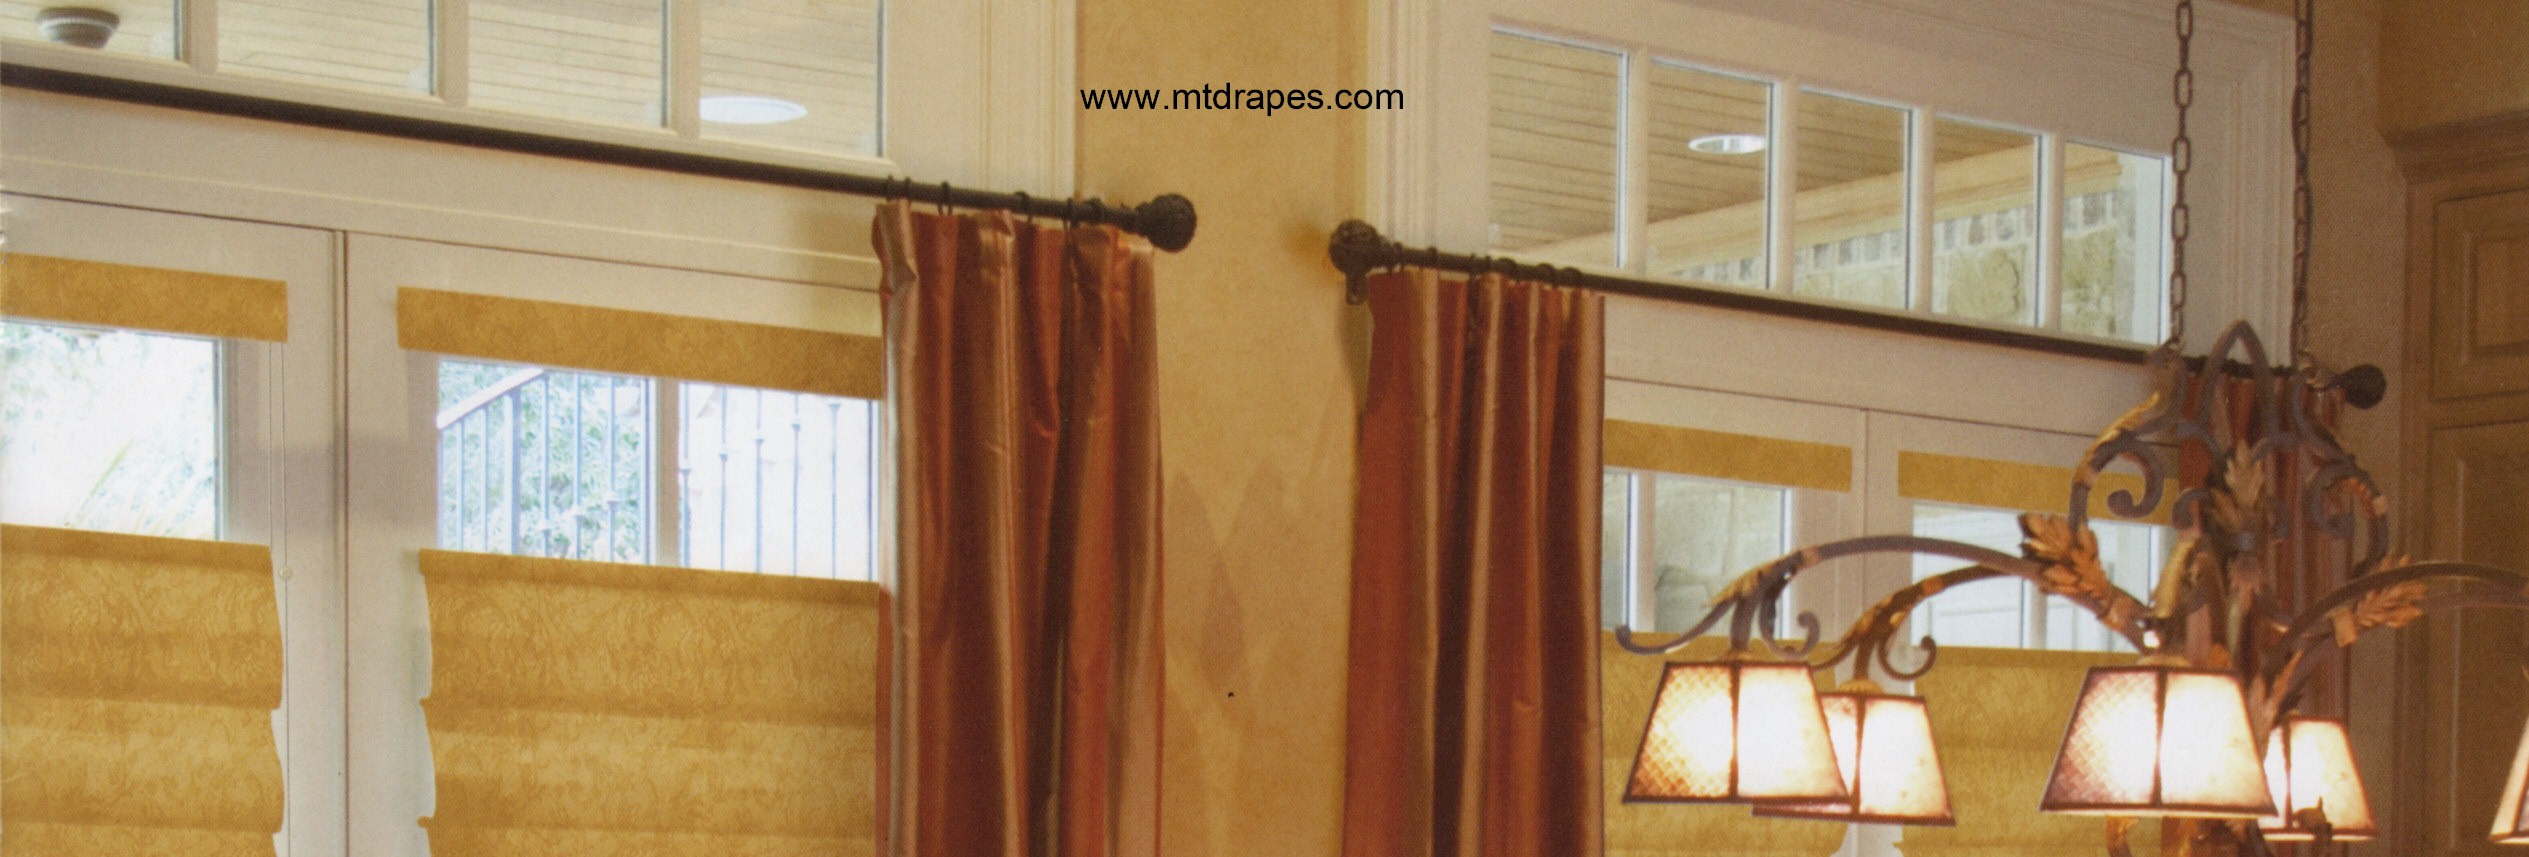 Kirsch Wrought Iron Curtain Rods - New Low Price